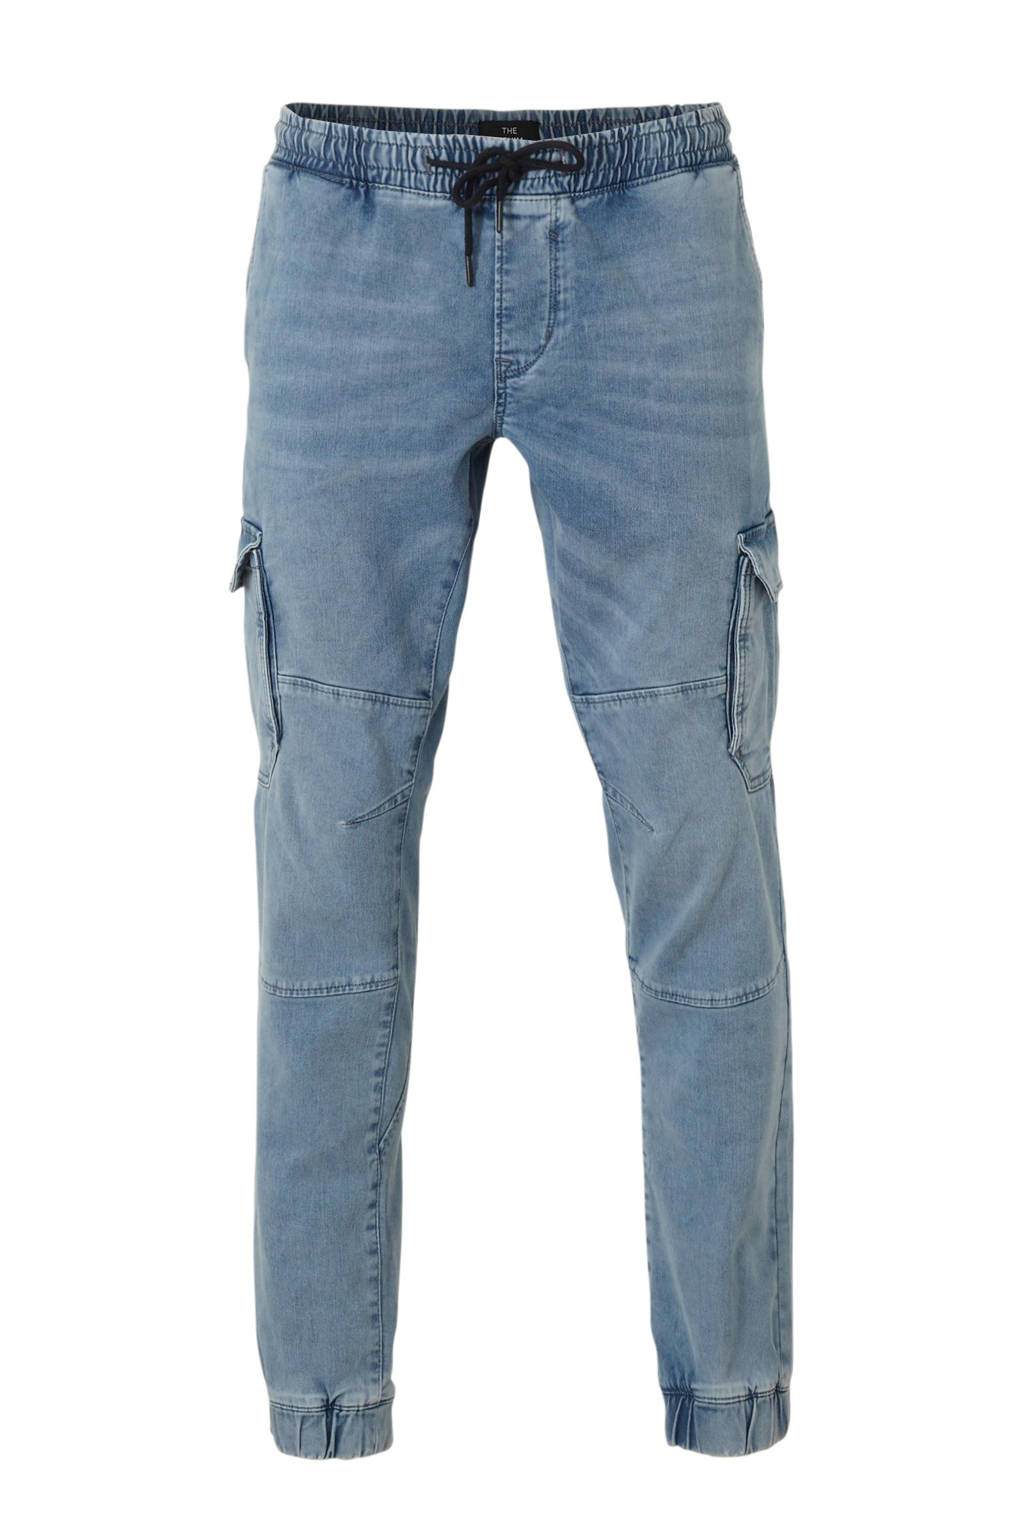 C&A The Denim tapered fit jog denim light denim, Light denim